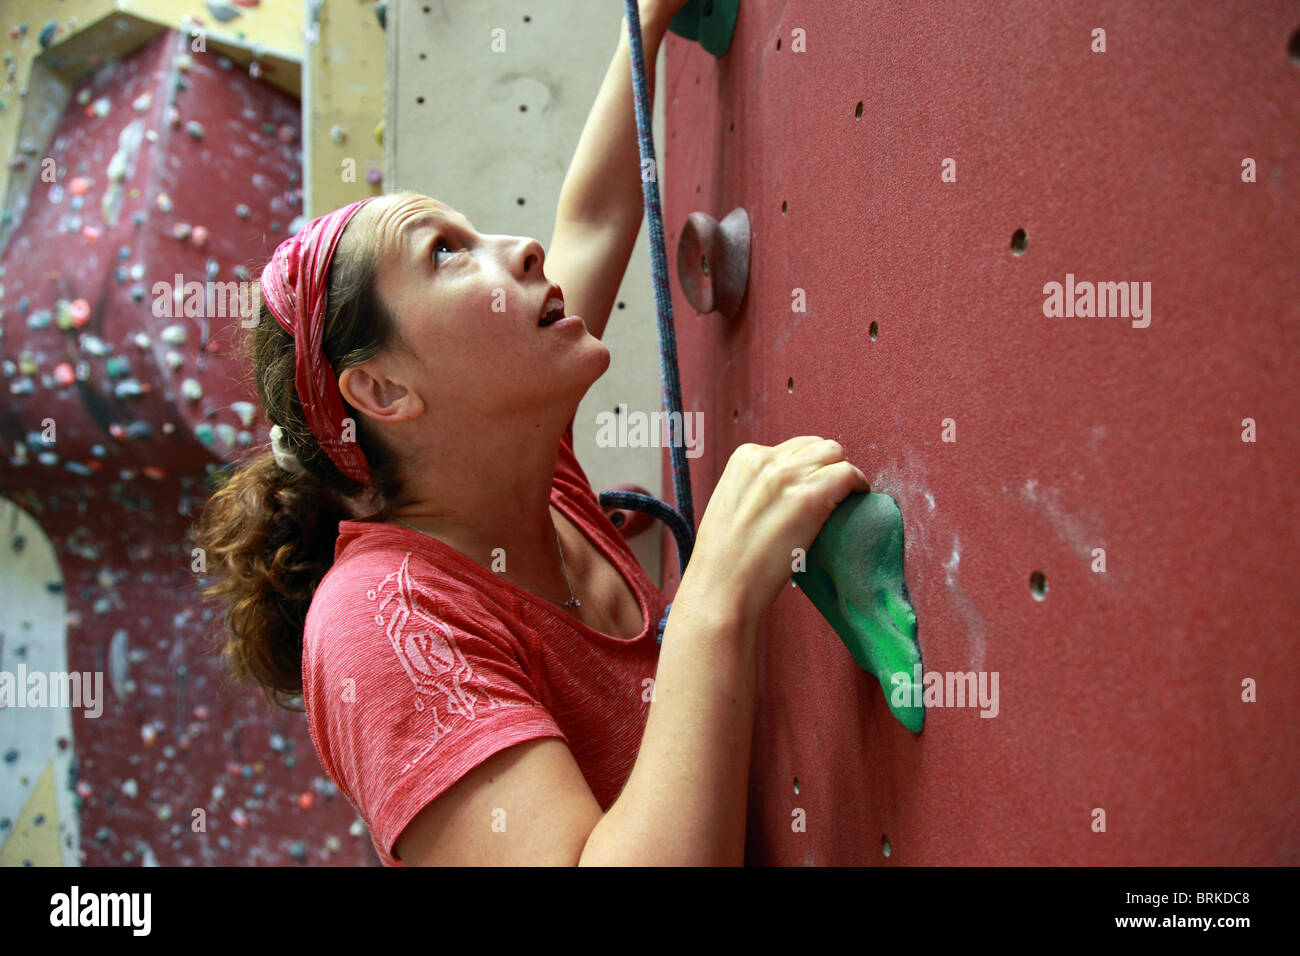 Girl in indoor climbing wall - Stock Image